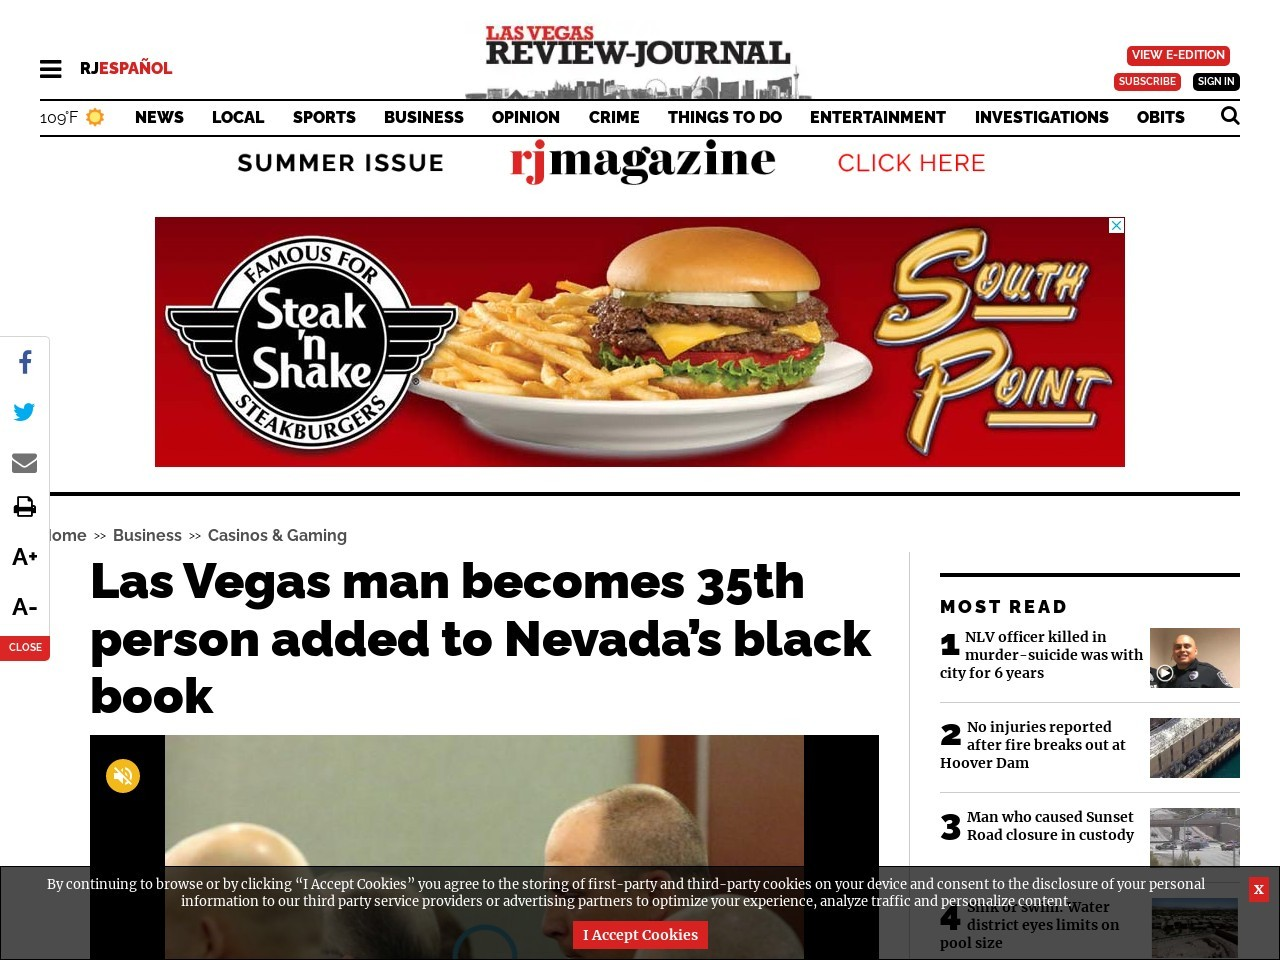 Las Vegas man becomes 35th person added to Nevada's black book